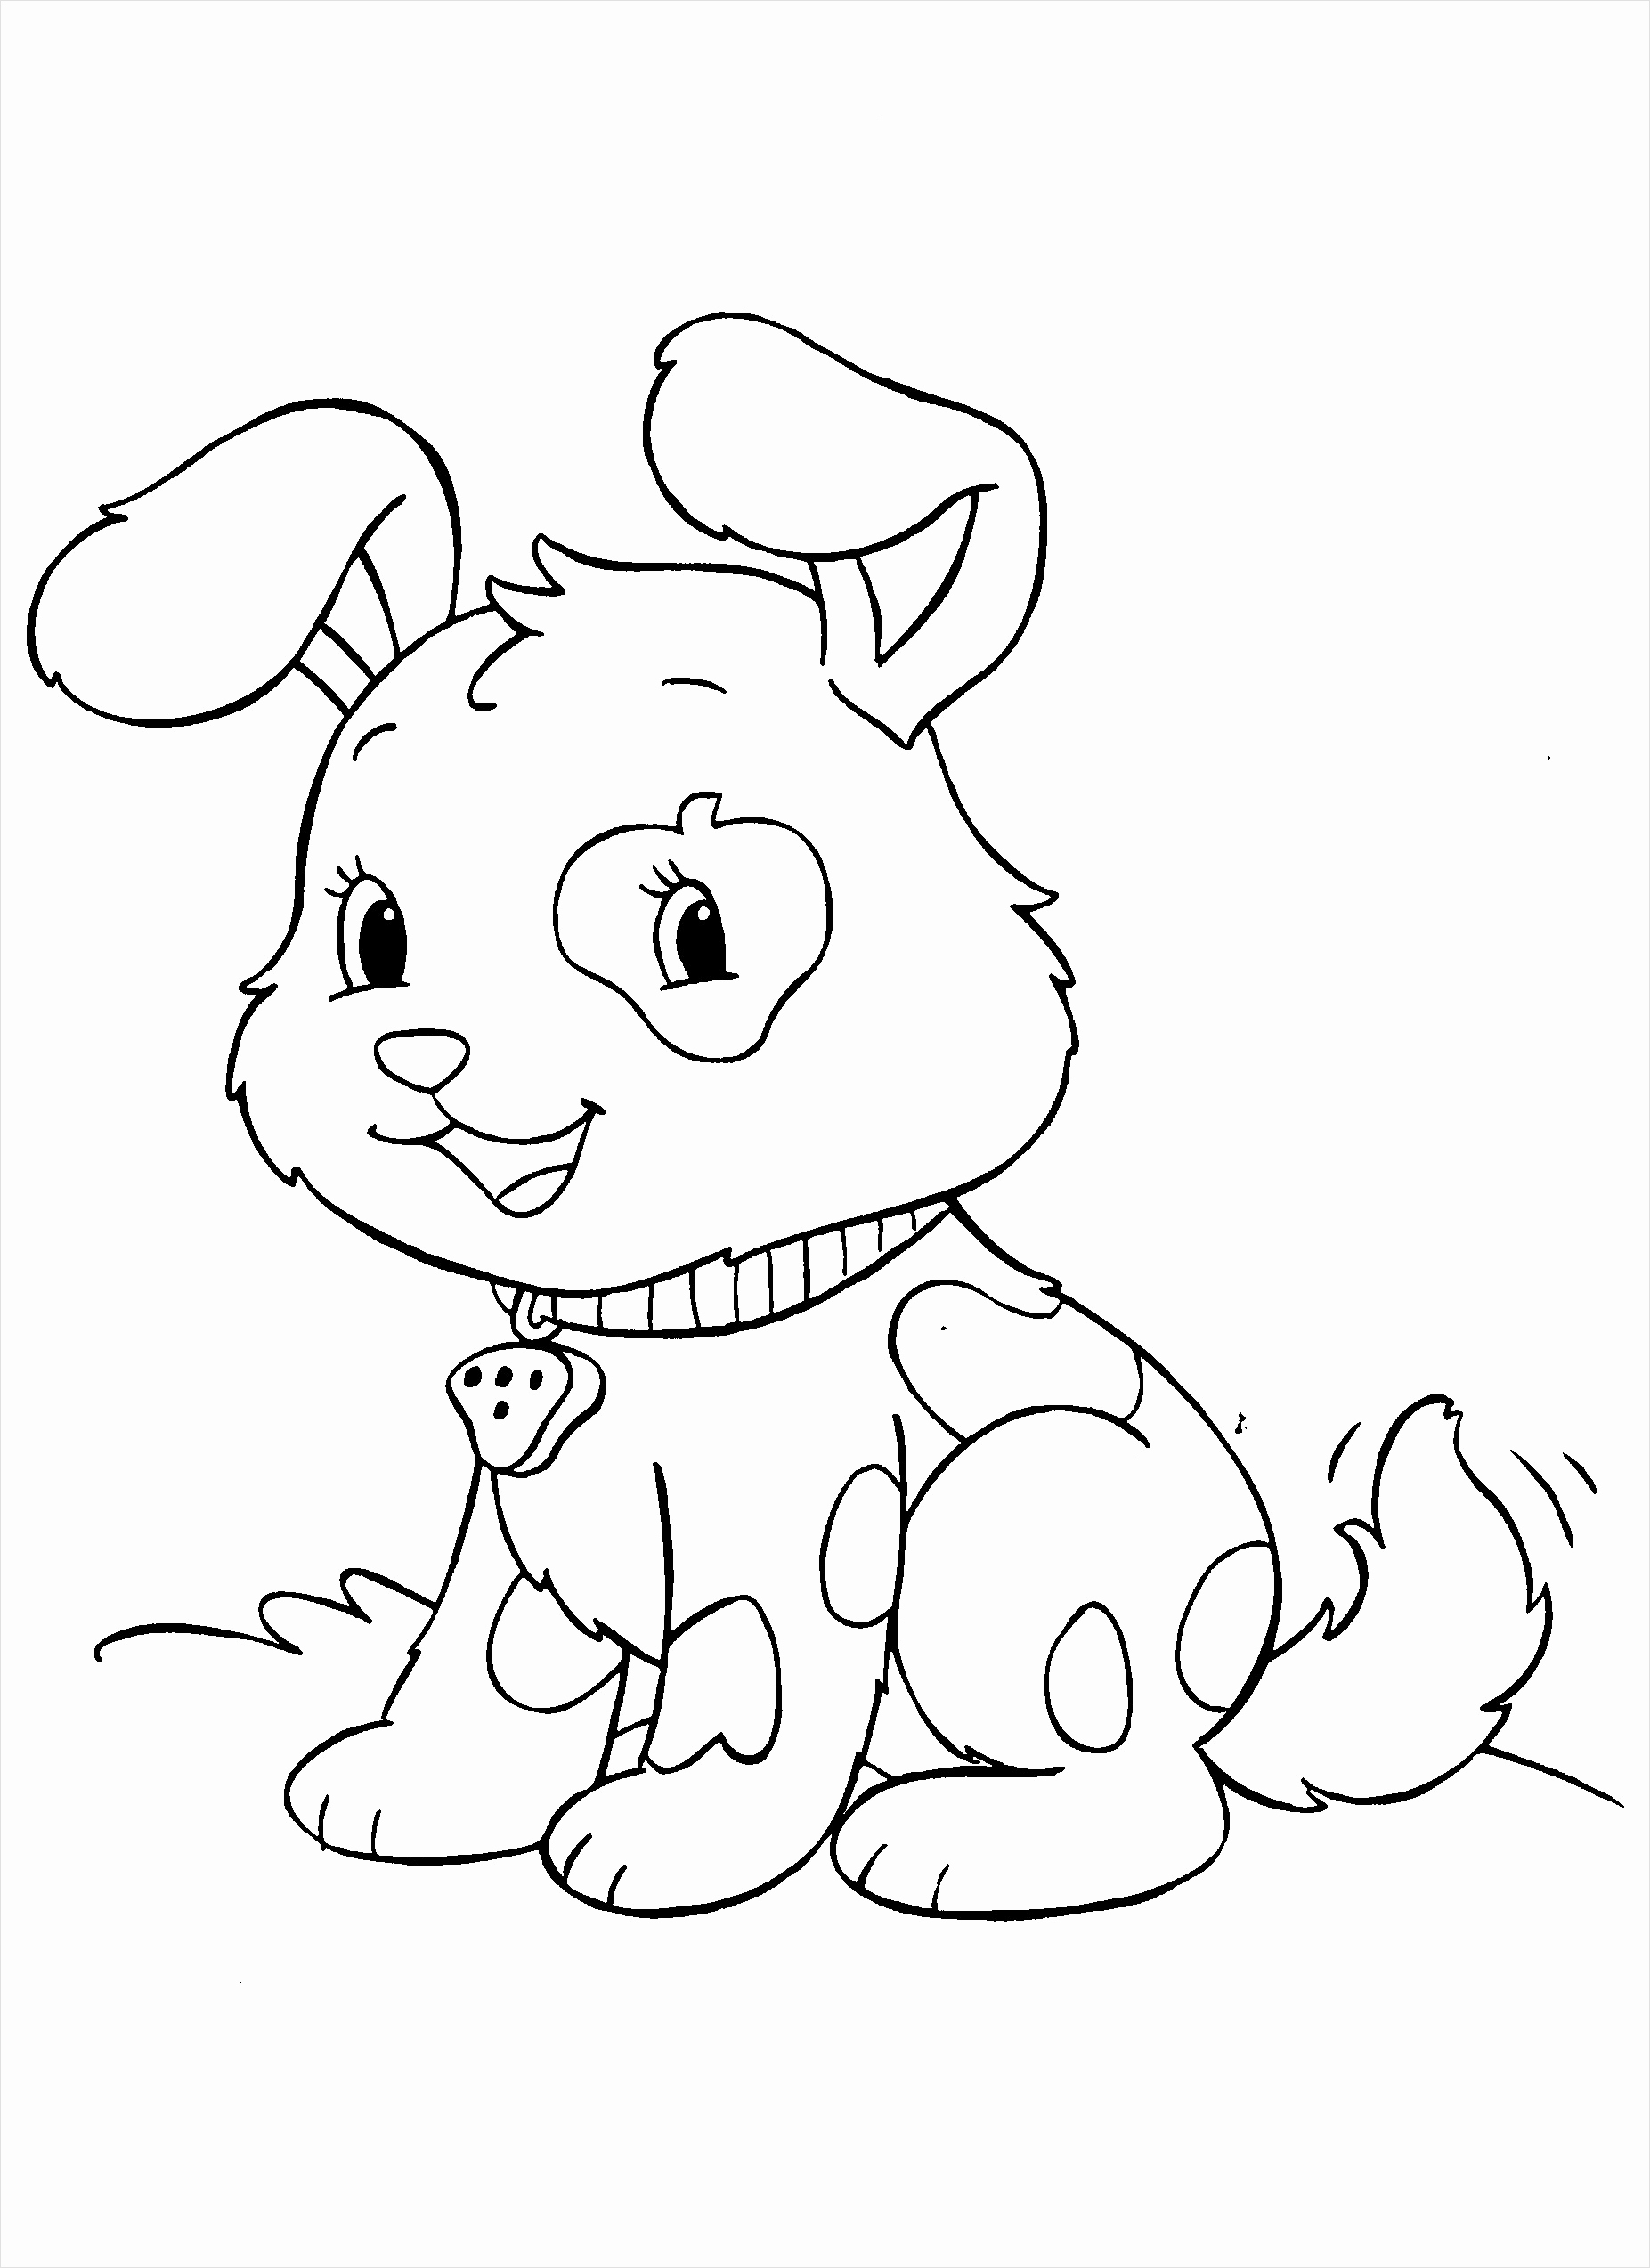 Coloring Pages Tsum Tsum  Gallery 15k - Free Download